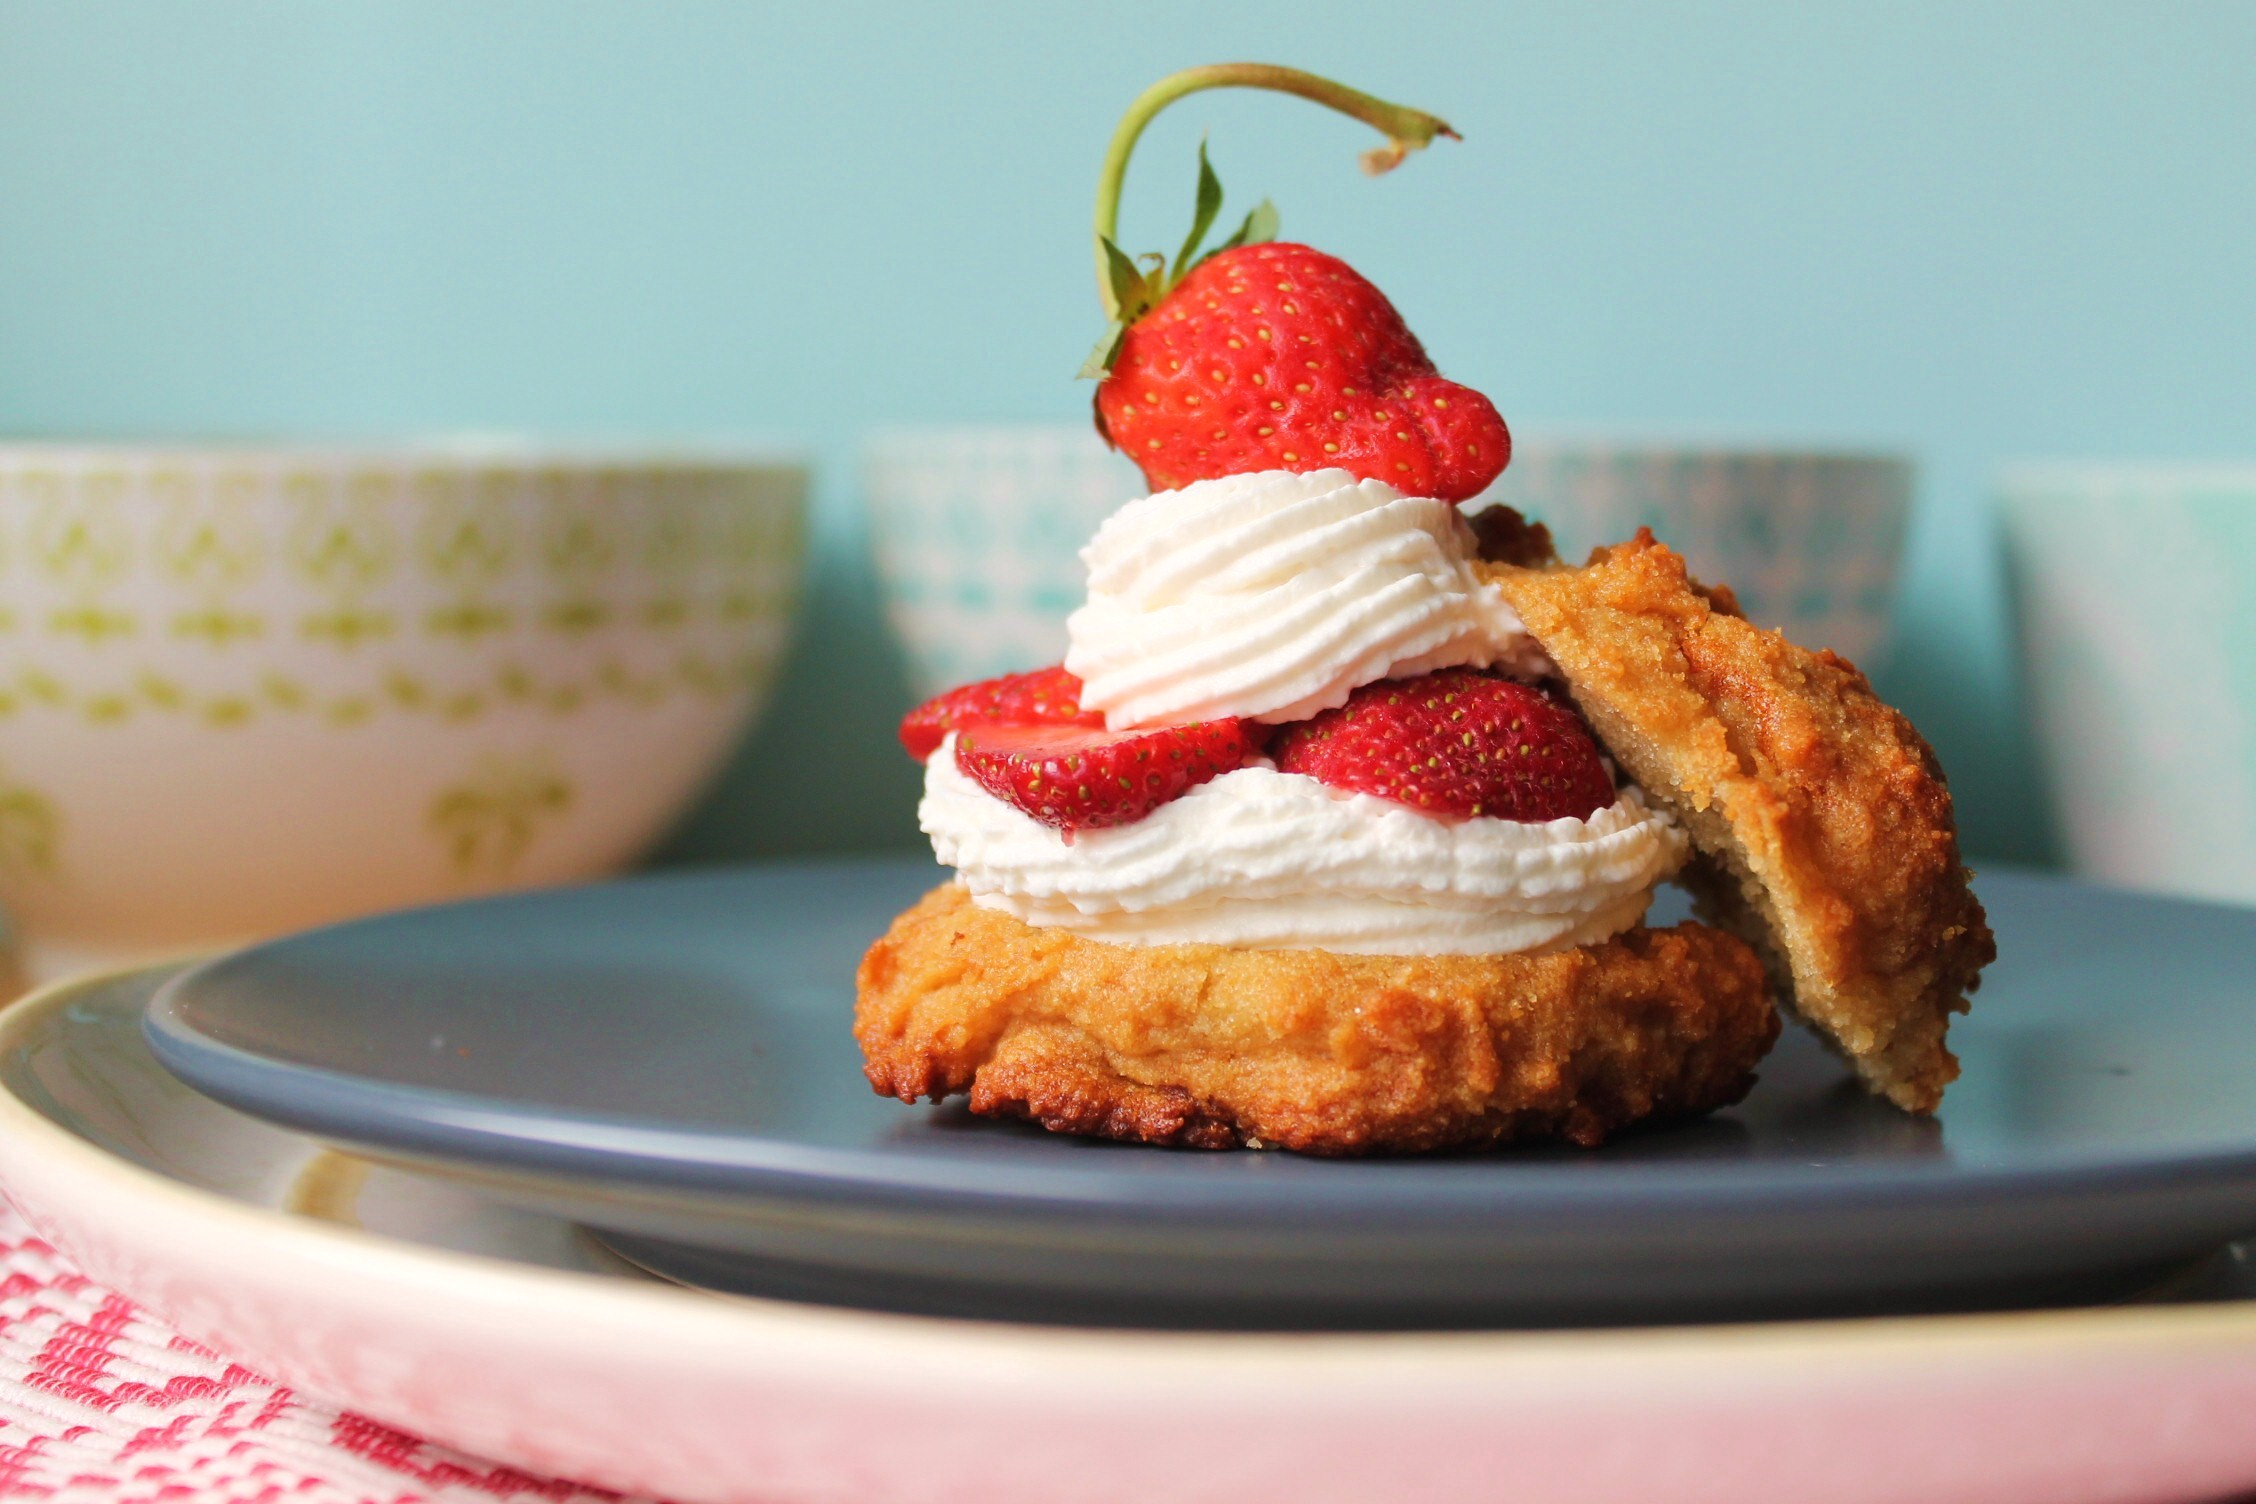 Cant wait to try this I grew up on strawberry shortcake with homemade b.m. biscuits and back then everyone my mom served it to loved it but never heard of shortcake with biscuits .